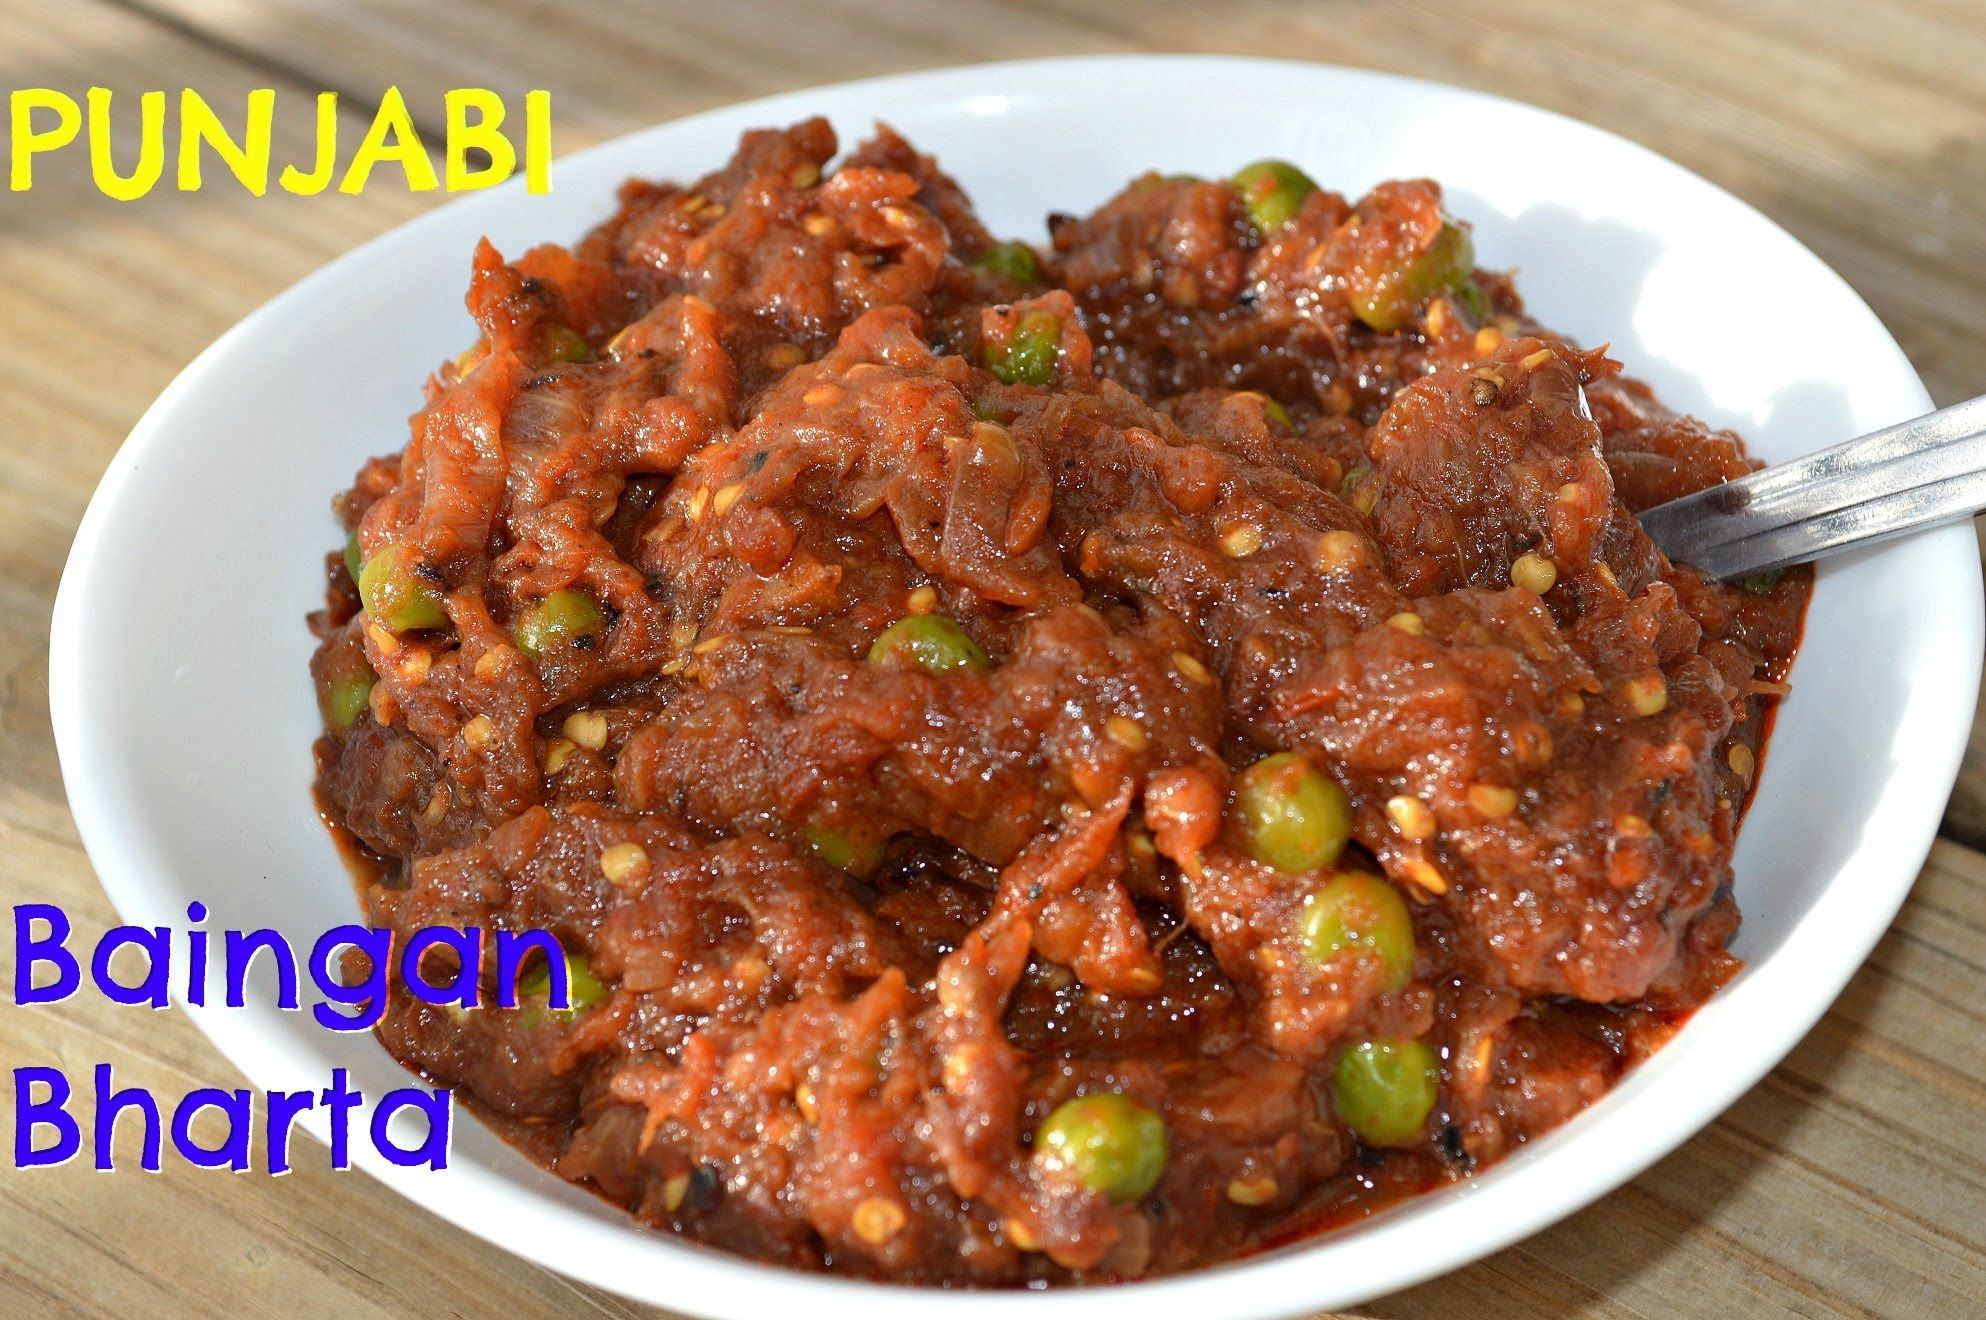 Baingan bharta punjabi authentic recipe video by chawlas kitchen food baingan bharta punjabi authentic recipe video forumfinder